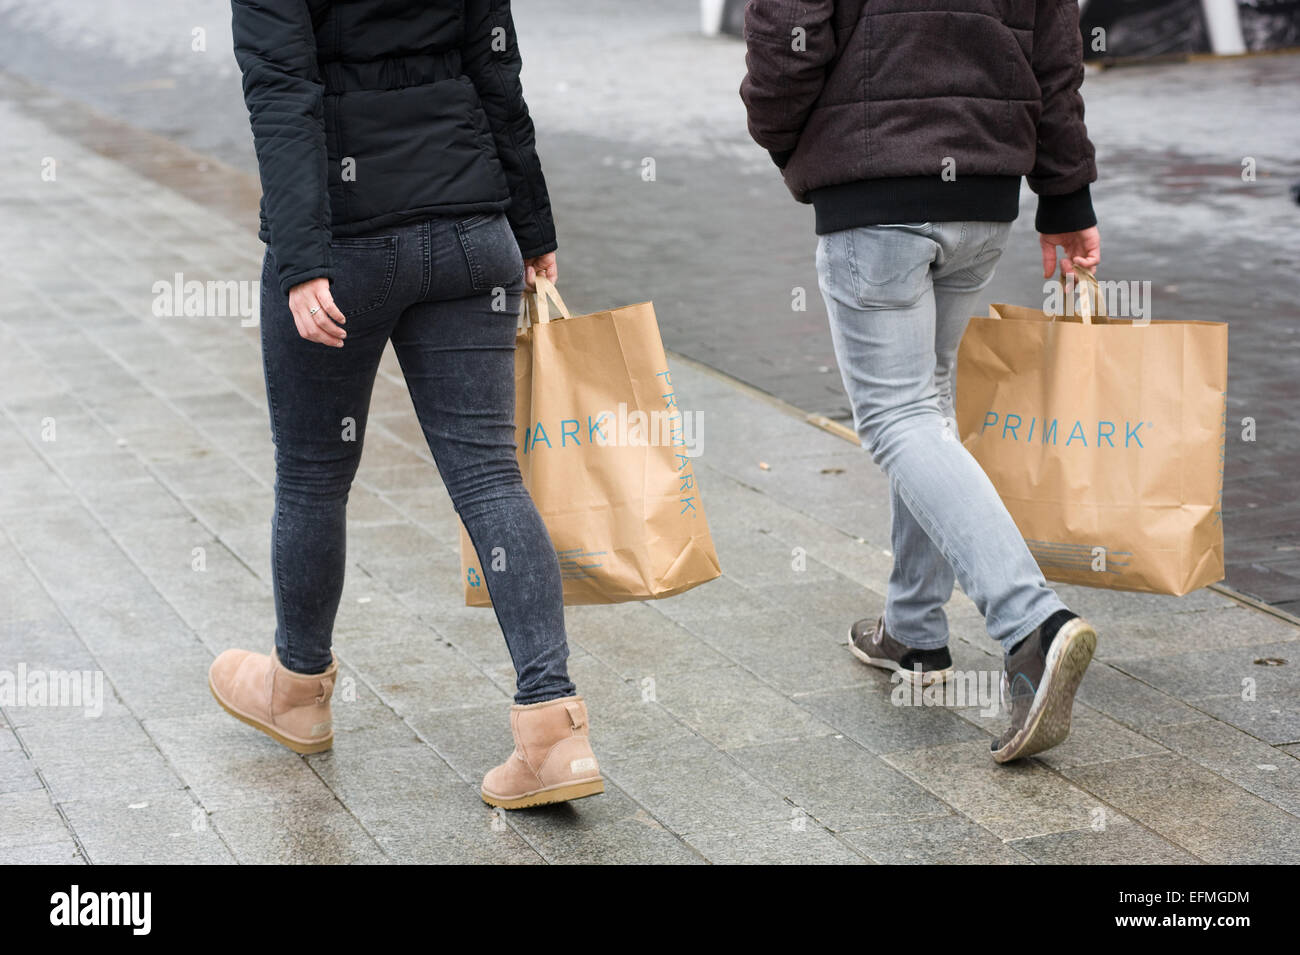 ENSCHEDE, THE NETHERLANDS - 05 FEB, 2015: Twp persons with shopping bags from Primark warehouse are walking on the - Stock Image